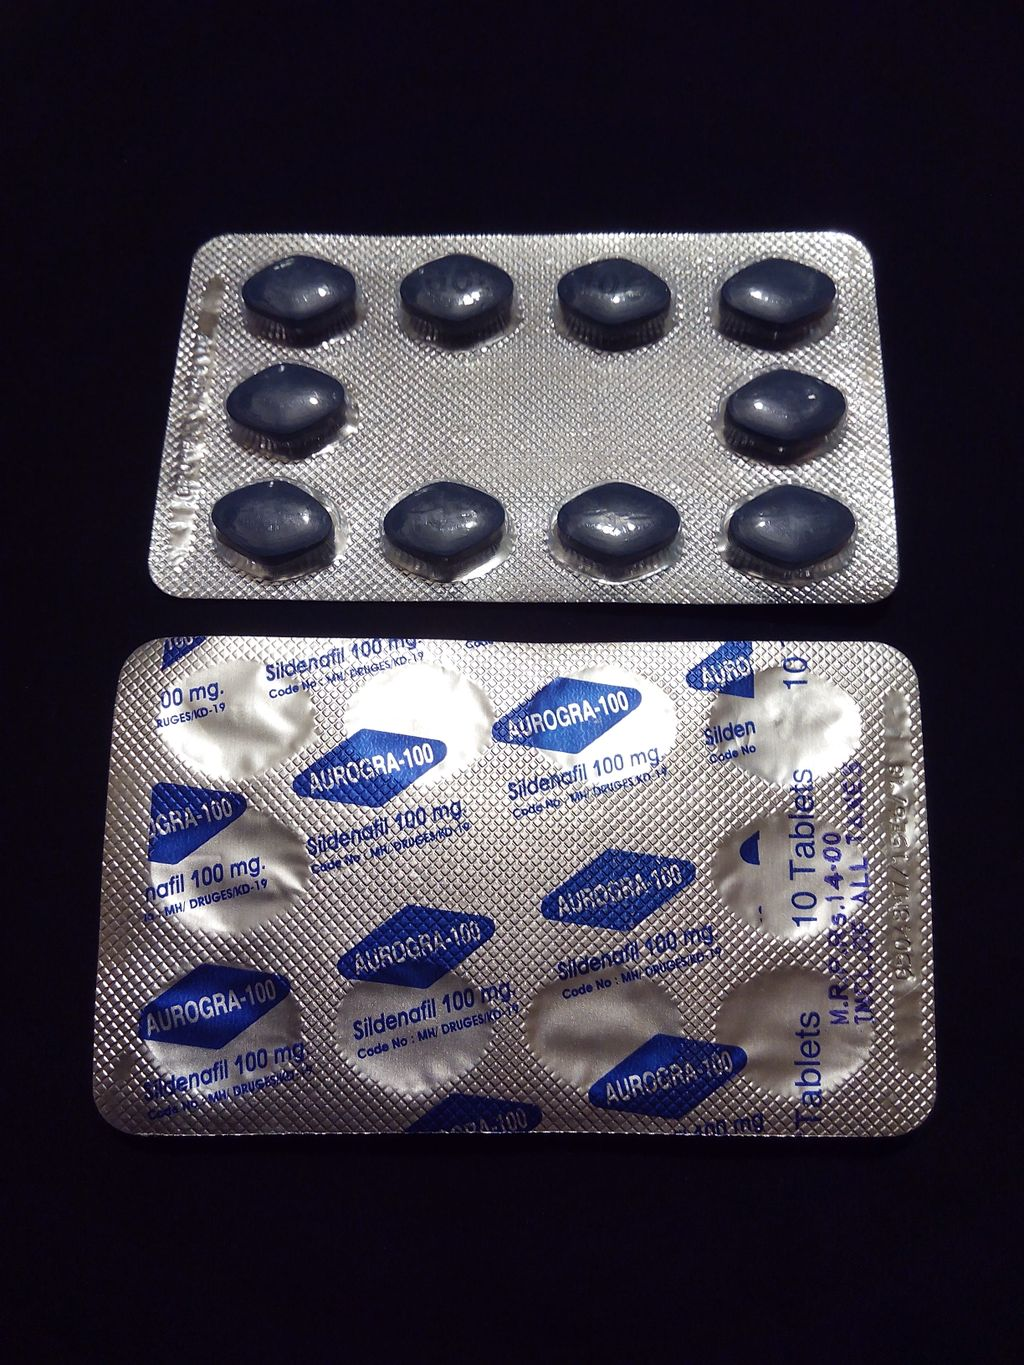 Doxycycline dr